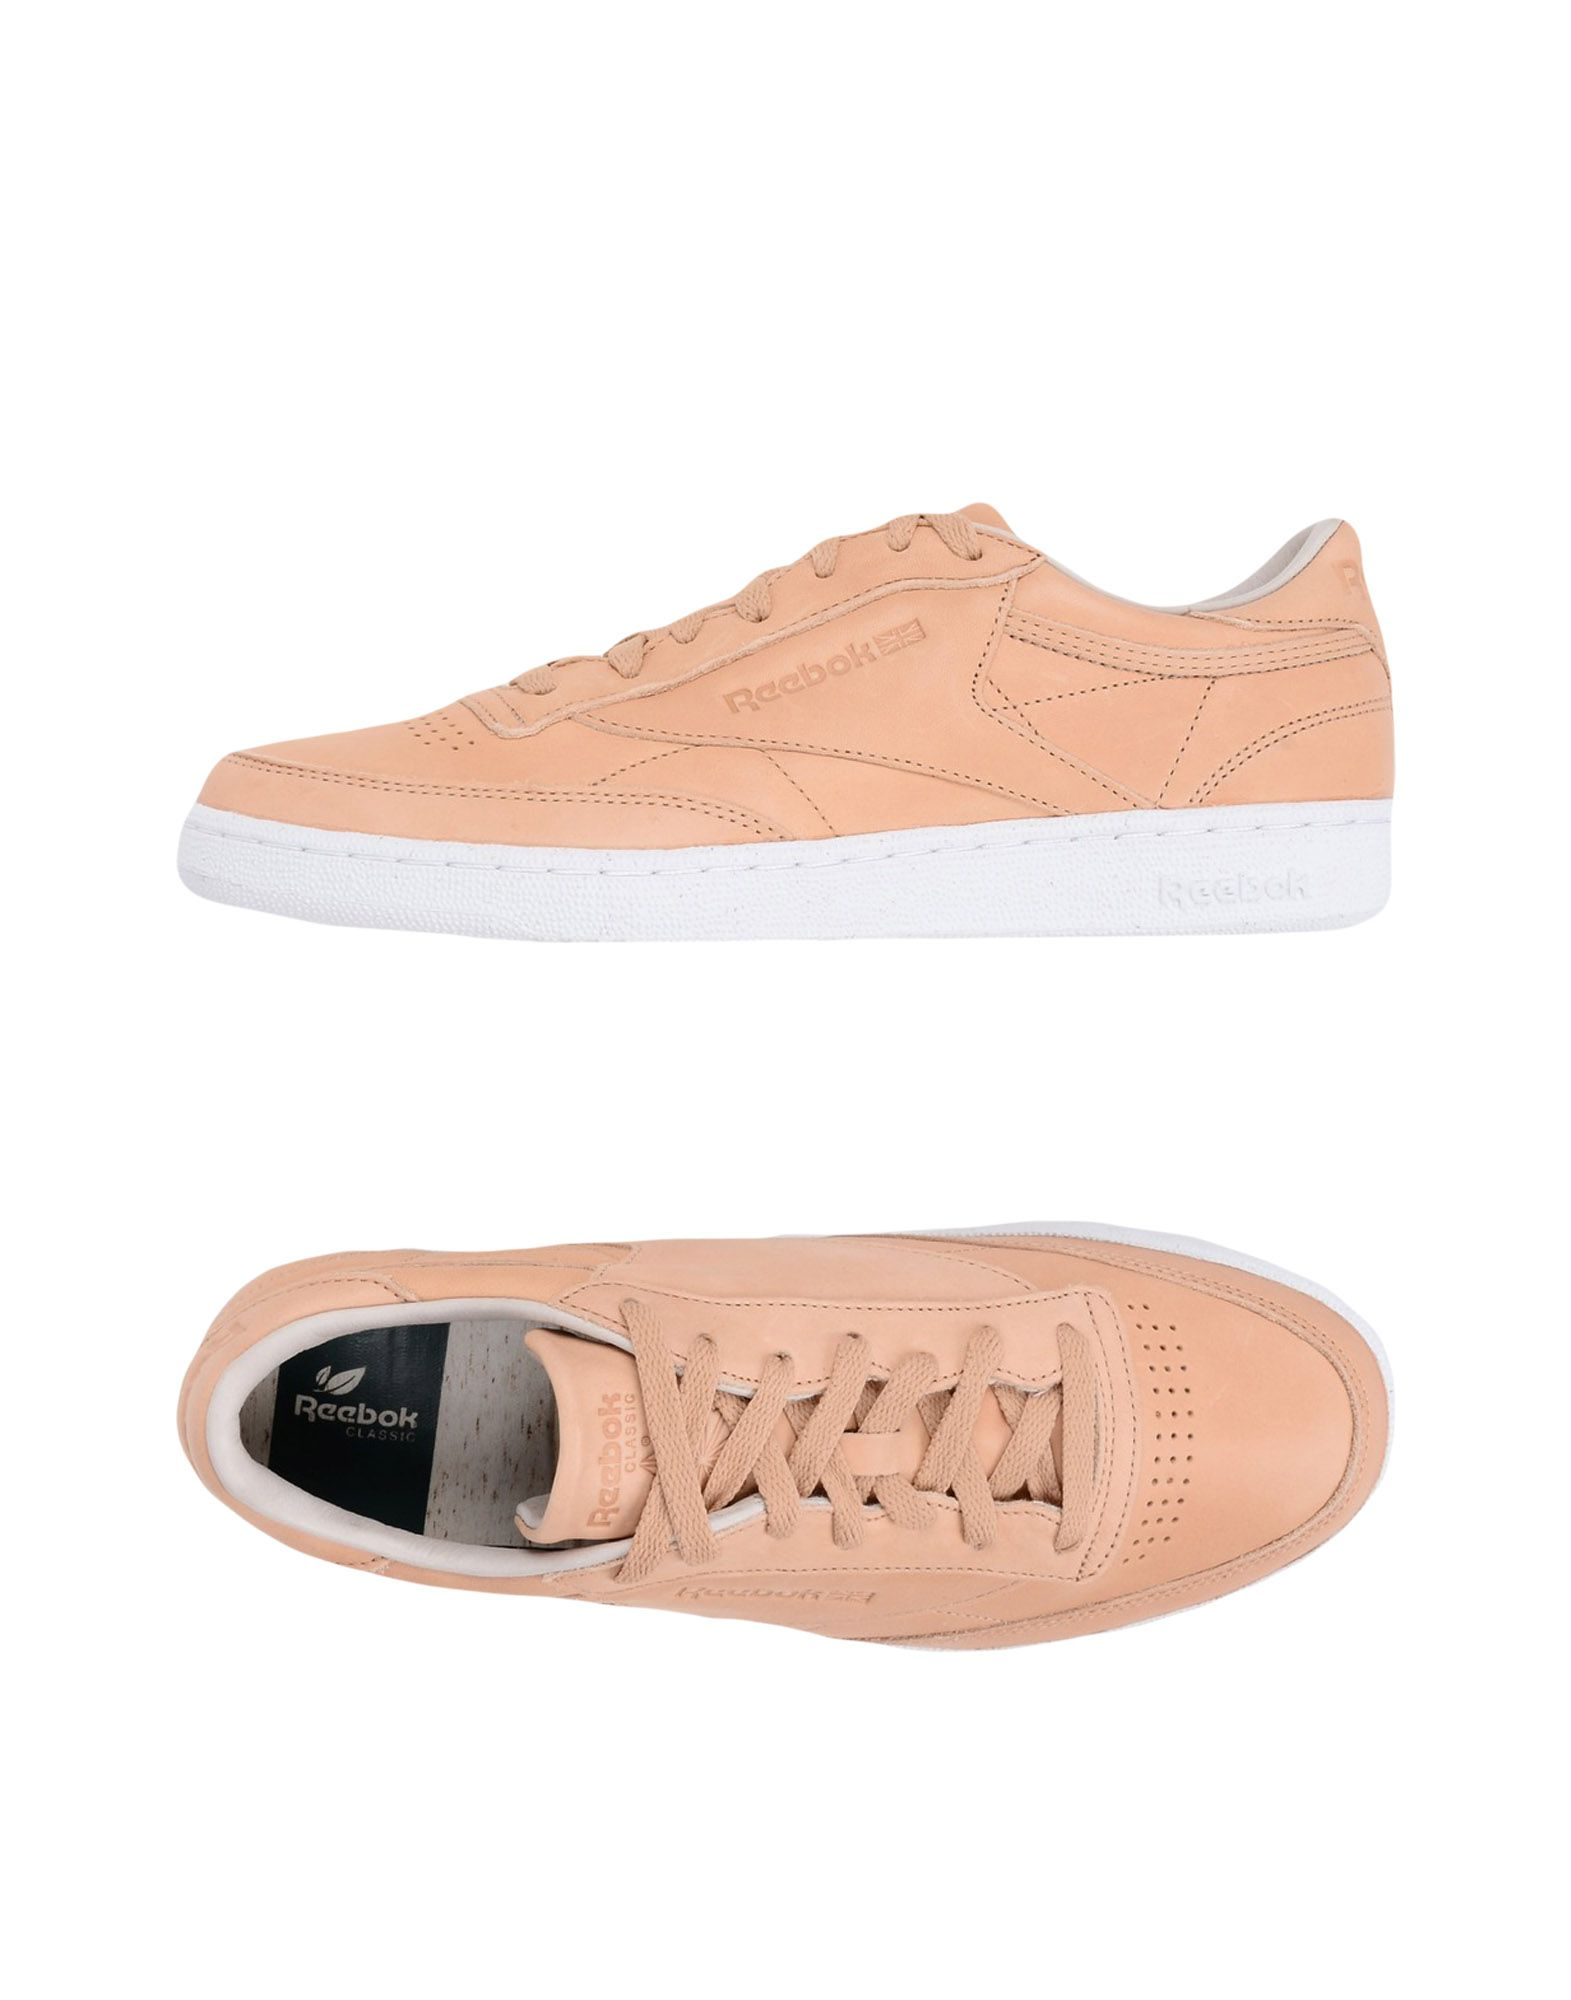 Reebok Club C 85 Ewt-Hvt Reebok - Sneakers - Men Reebok Ewt-Hvt Sneakers online on  United Kingdom - 11325740GA 920296